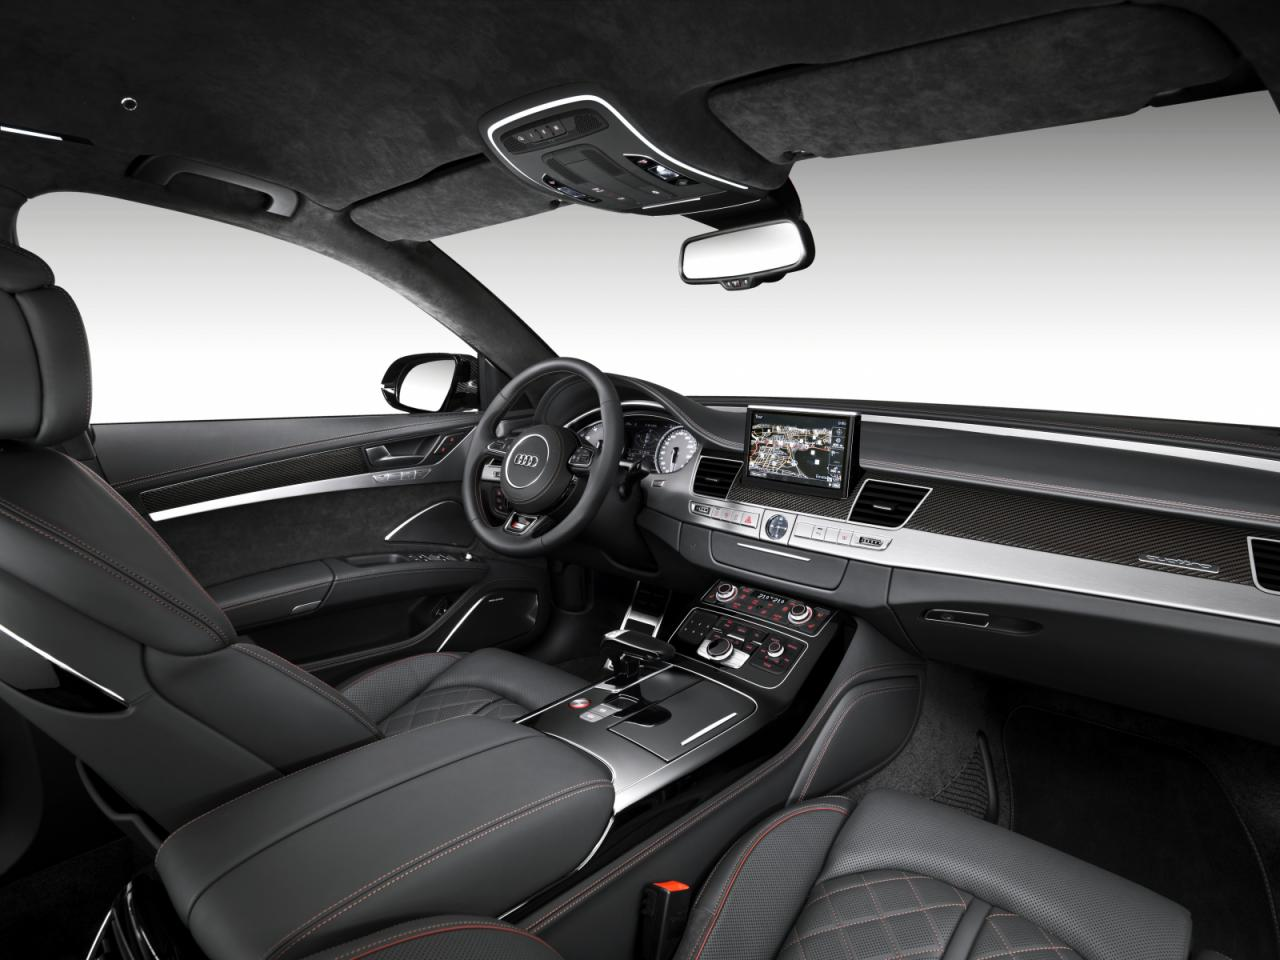 Audi S8 Plus interior dashboard